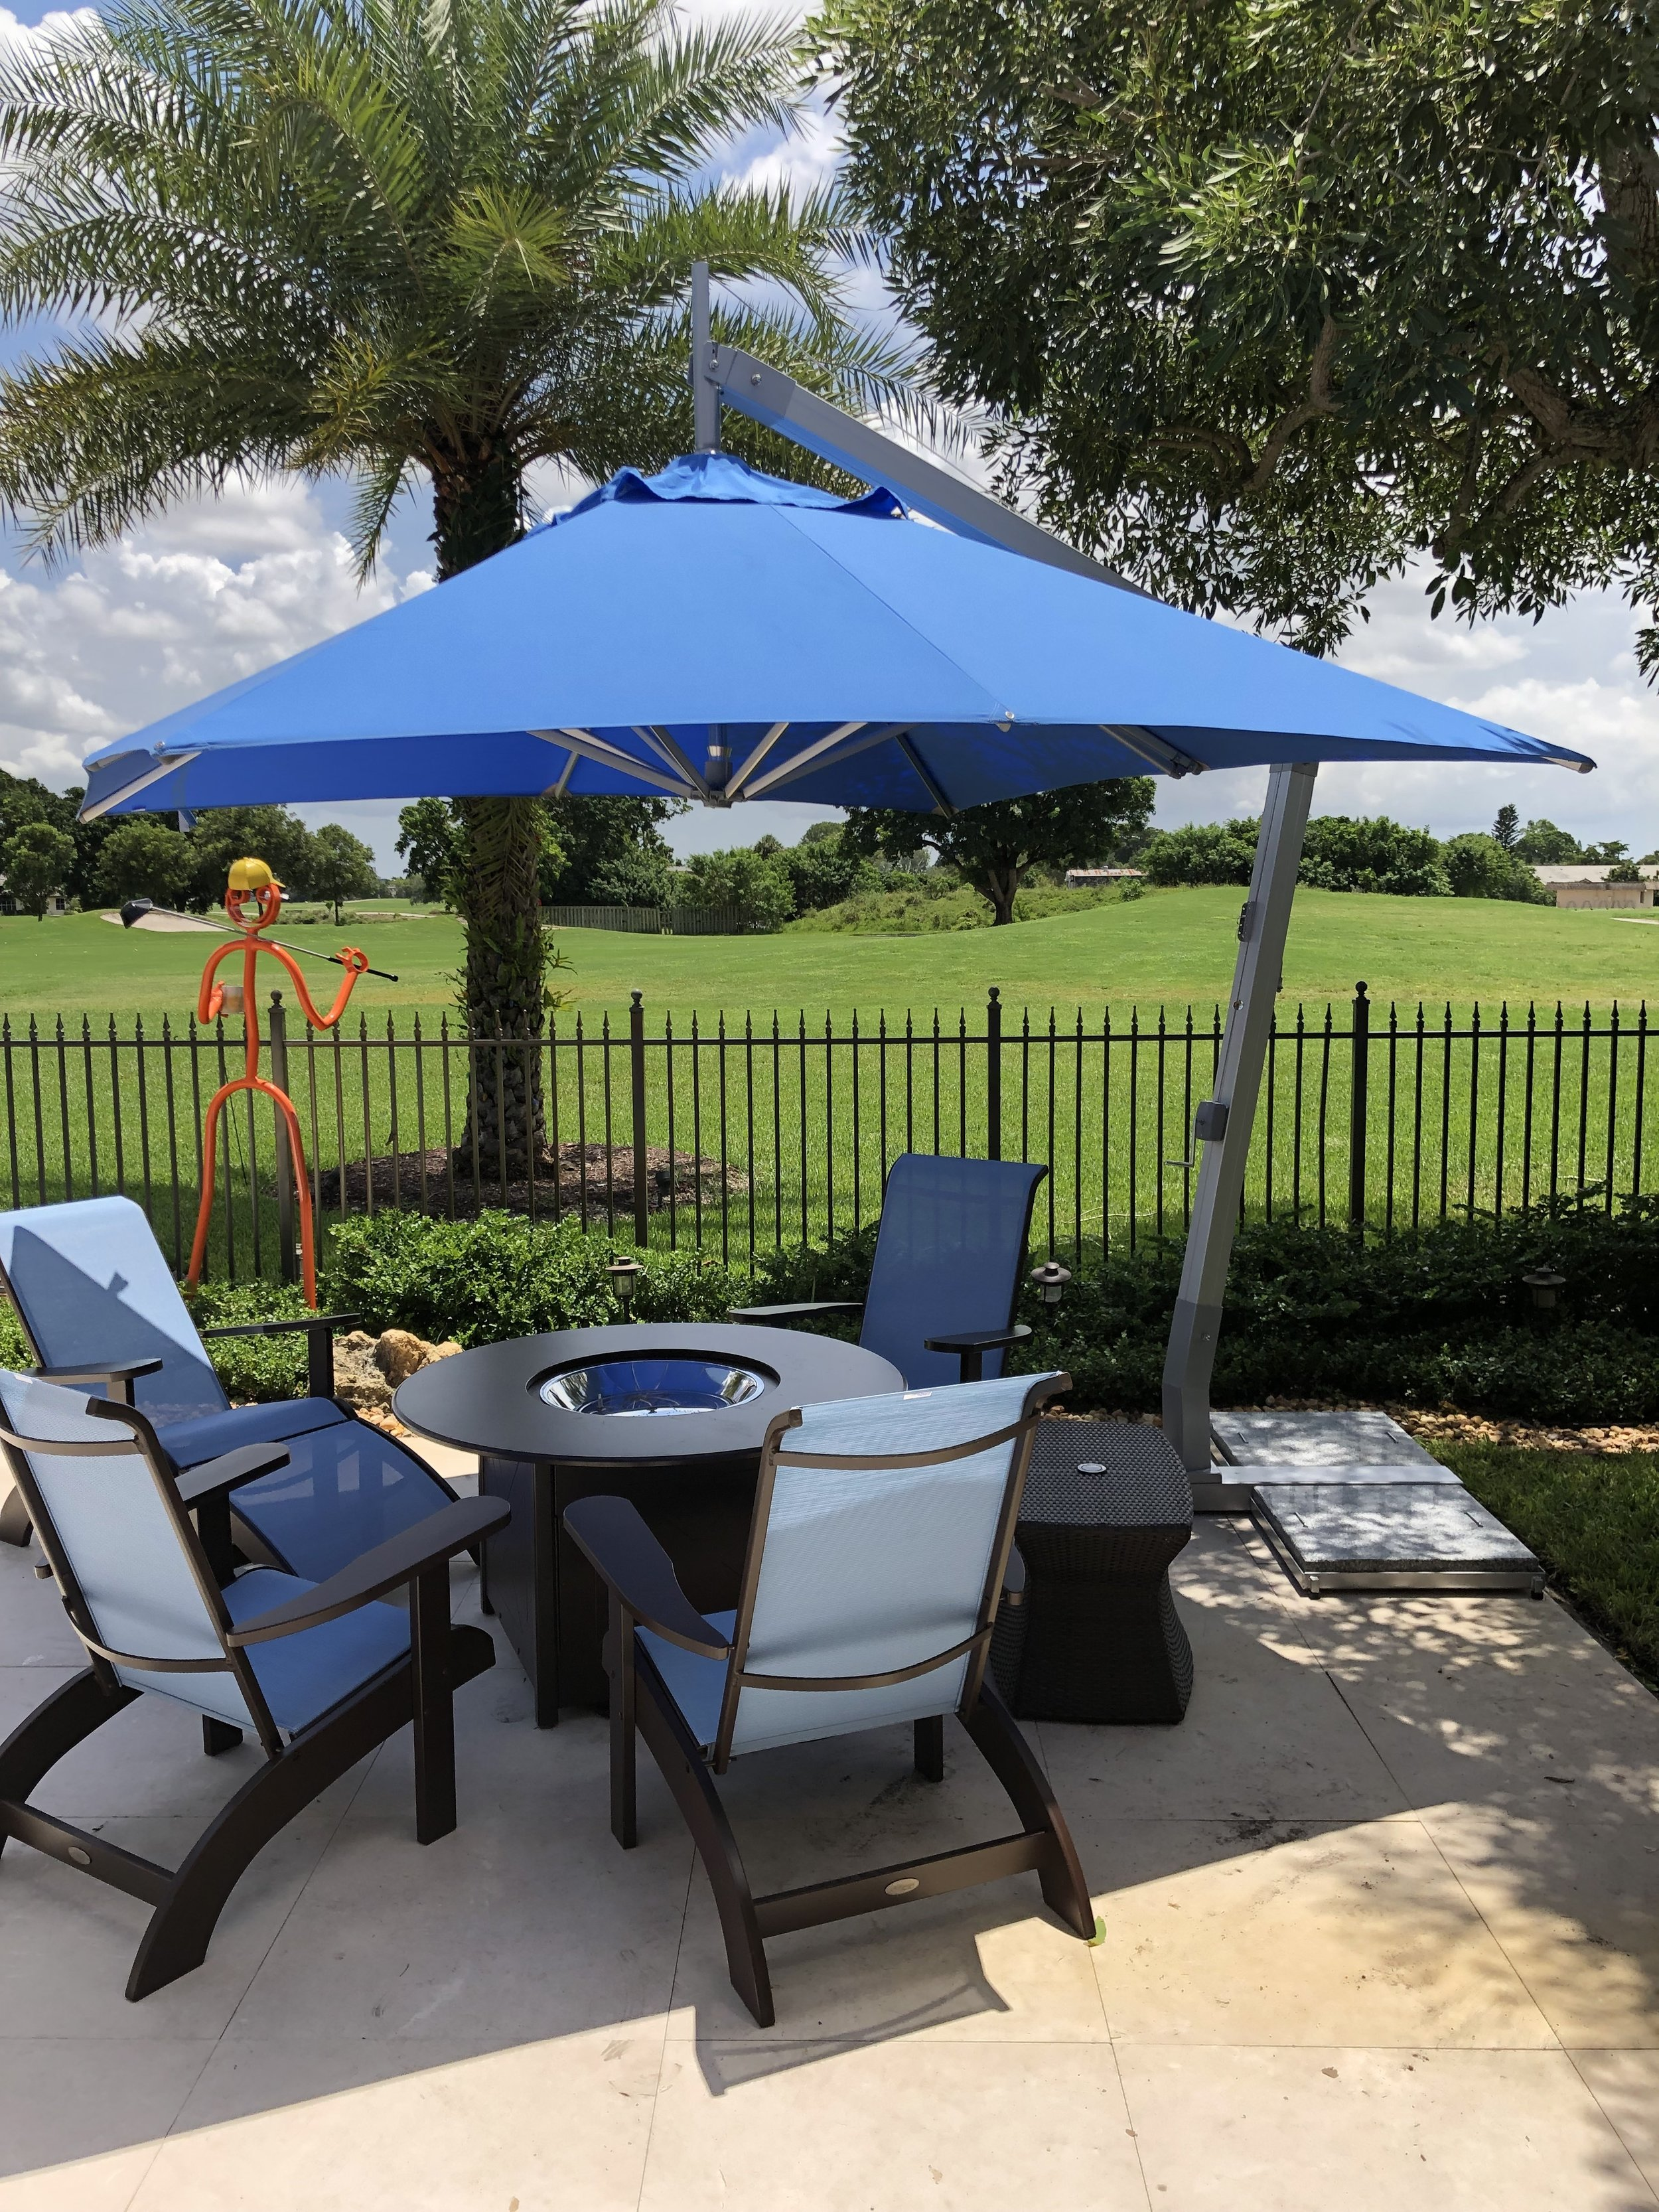 This 11.5' Round Hurricane Side Wind provides great shade for an outdoor fire pit patio set!